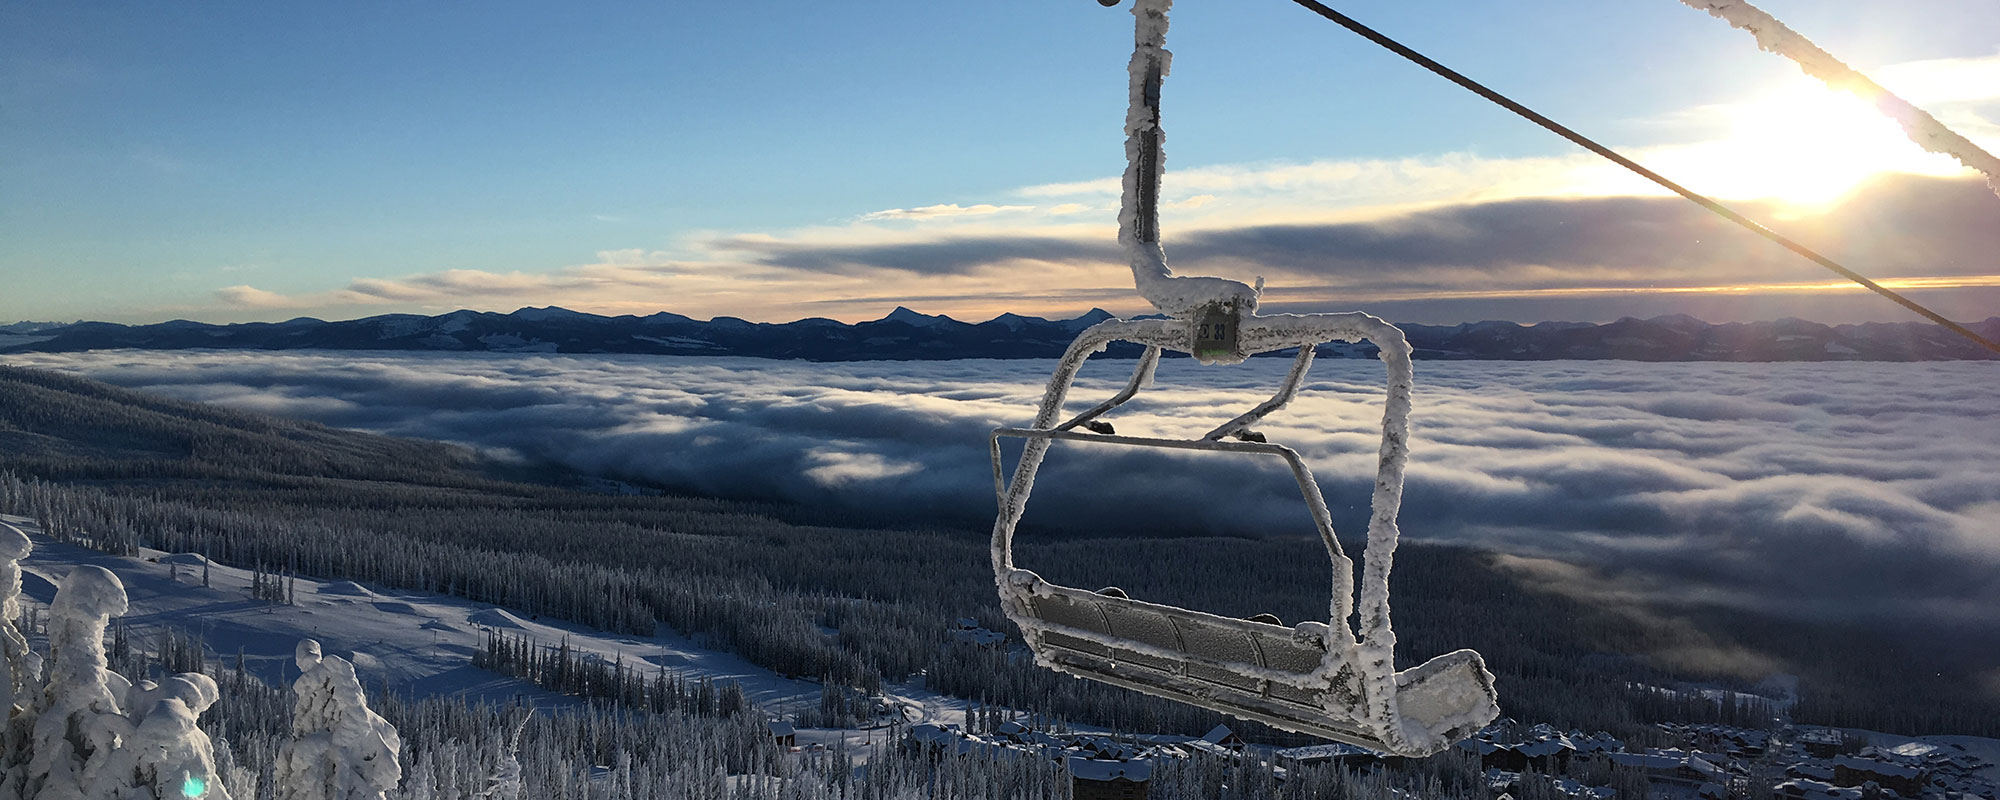 scenic merritts lift activities july chairlift chair rides